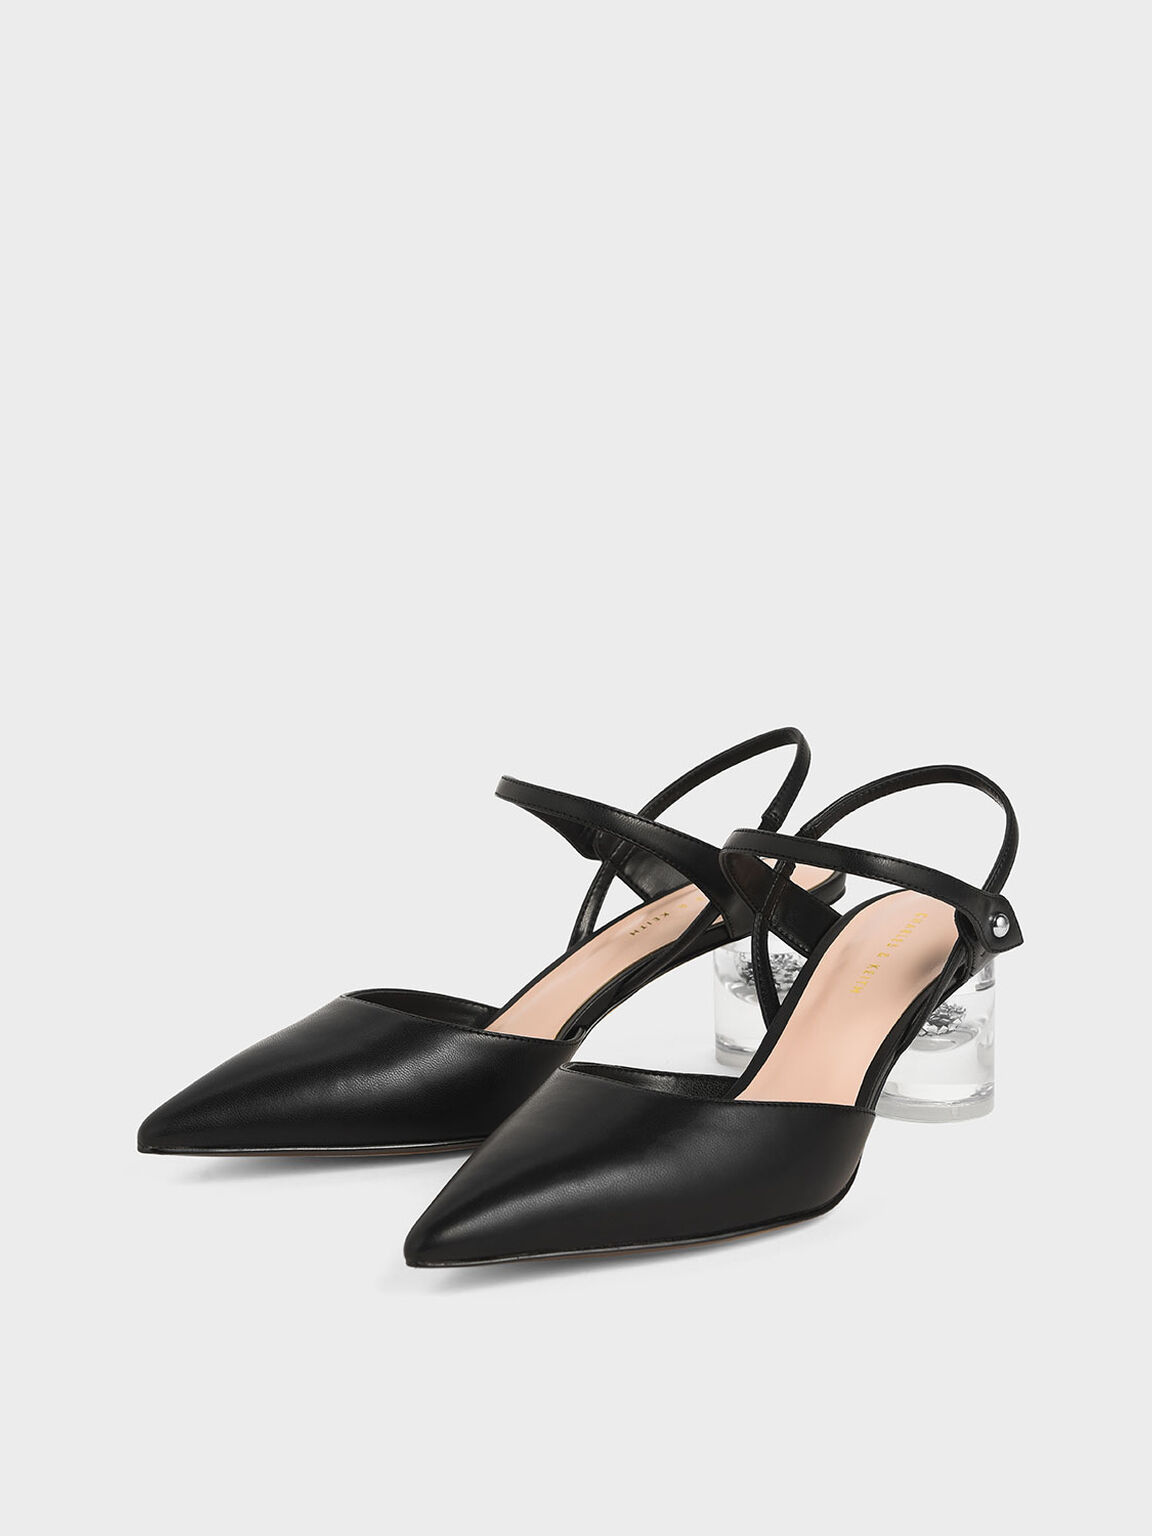 Pointed Toe Lucite Heel Cylindrical Pumps, Black, hi-res